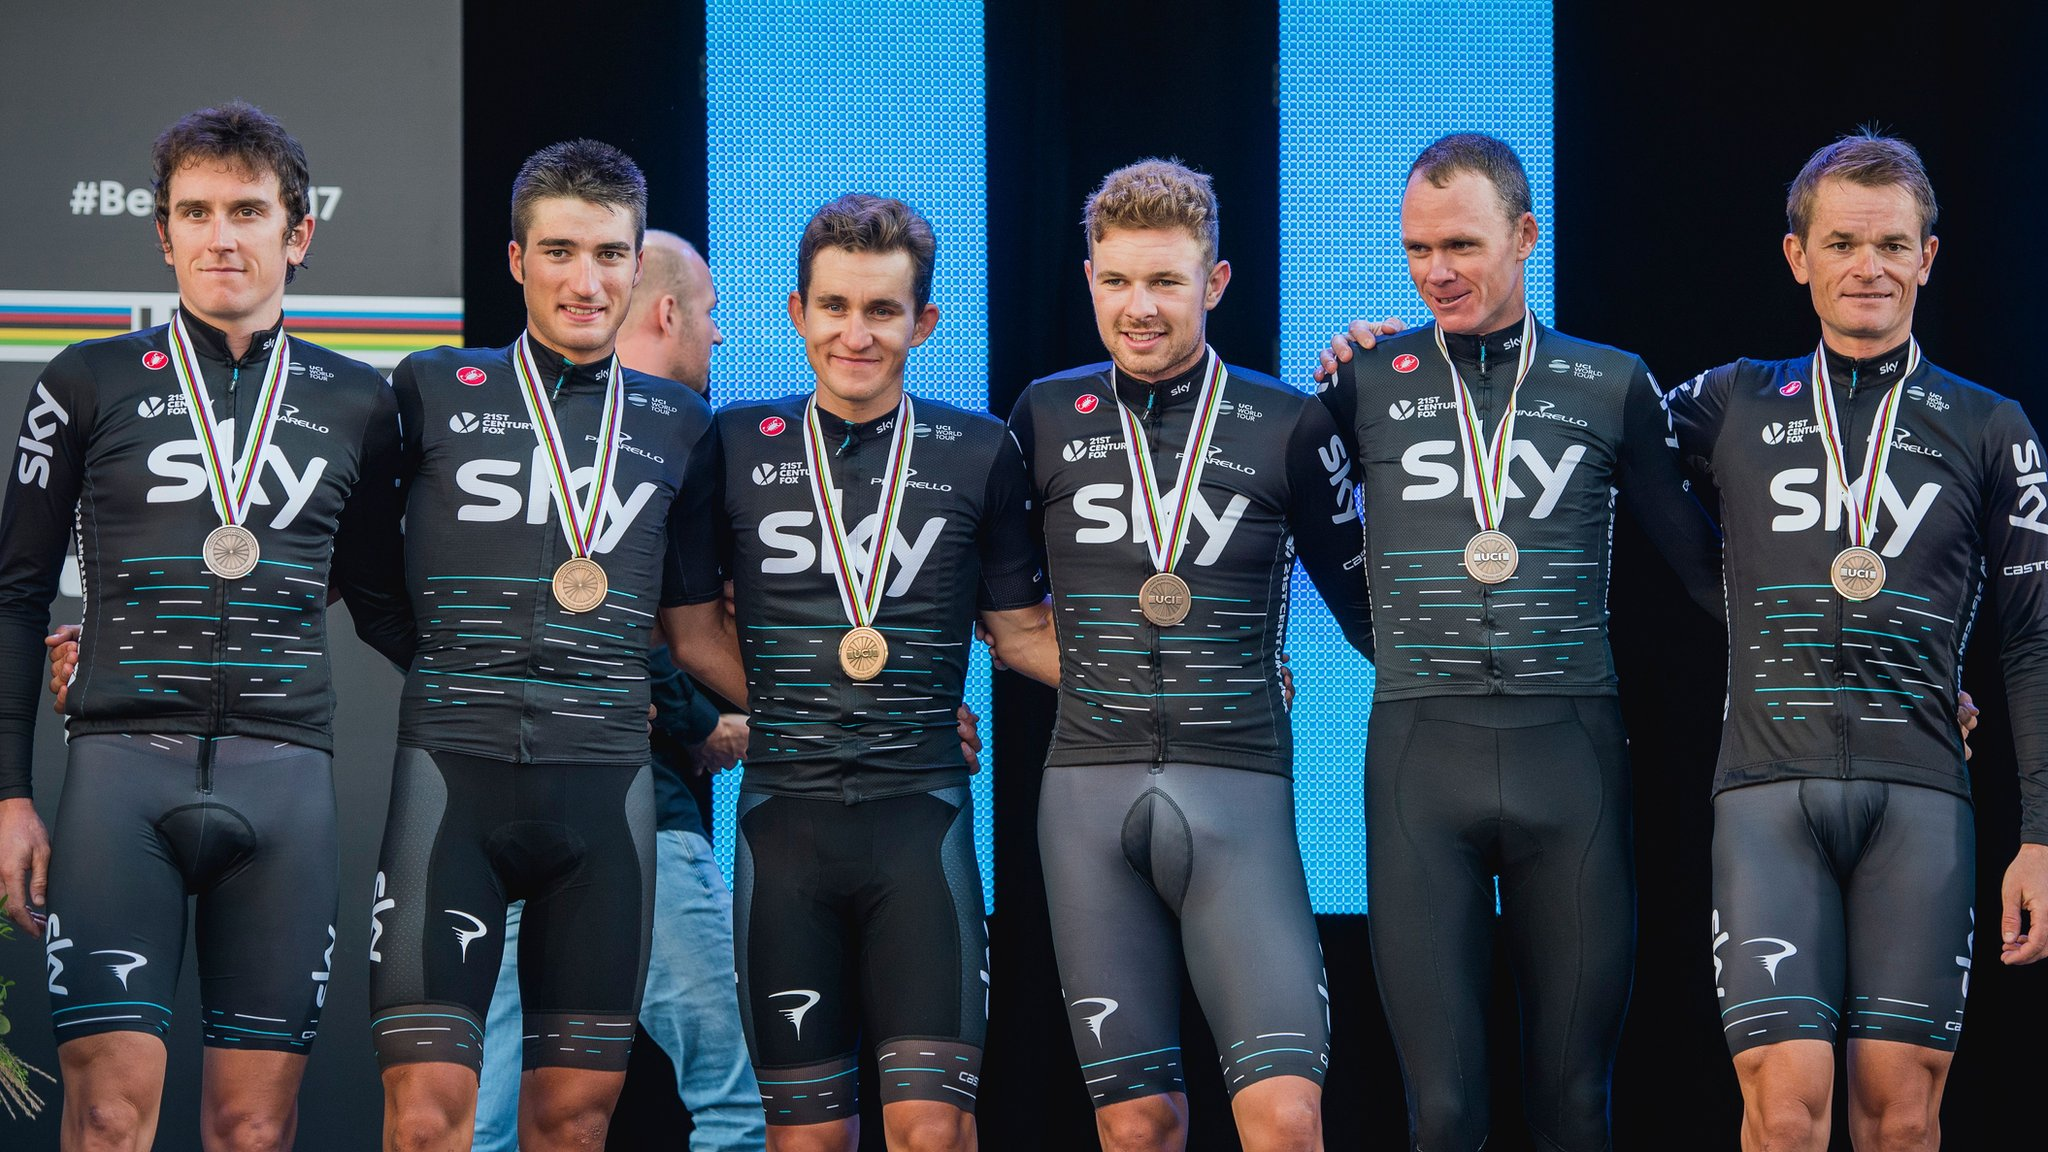 Road World Championships: Team Sky third in team time trial